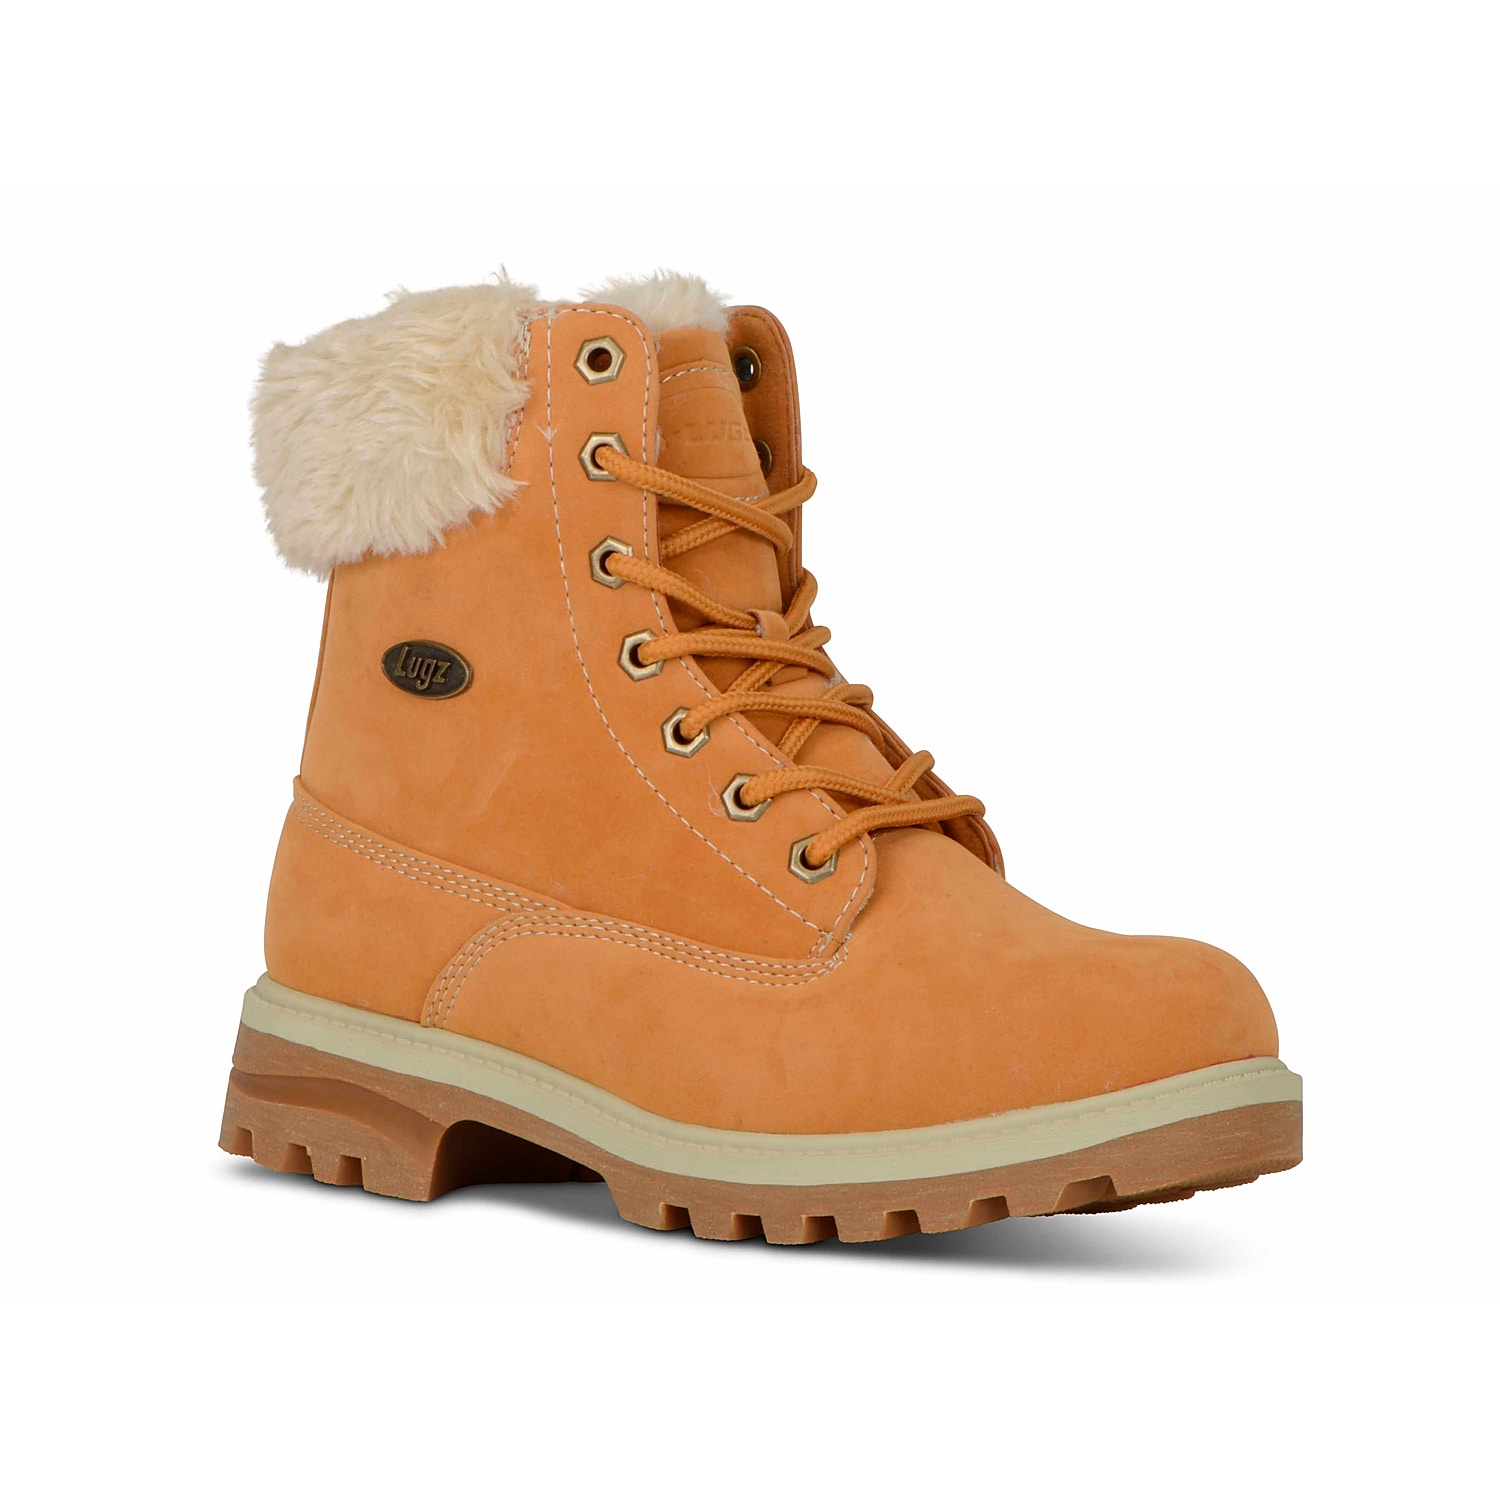 Lace up in the Empire Hi ankle boots from Lugz for a fashionable update to your casual winter wardrobe! With cozy faux fur lining and a memory foam insole, these water resistant lug booties offer both comfort and style!